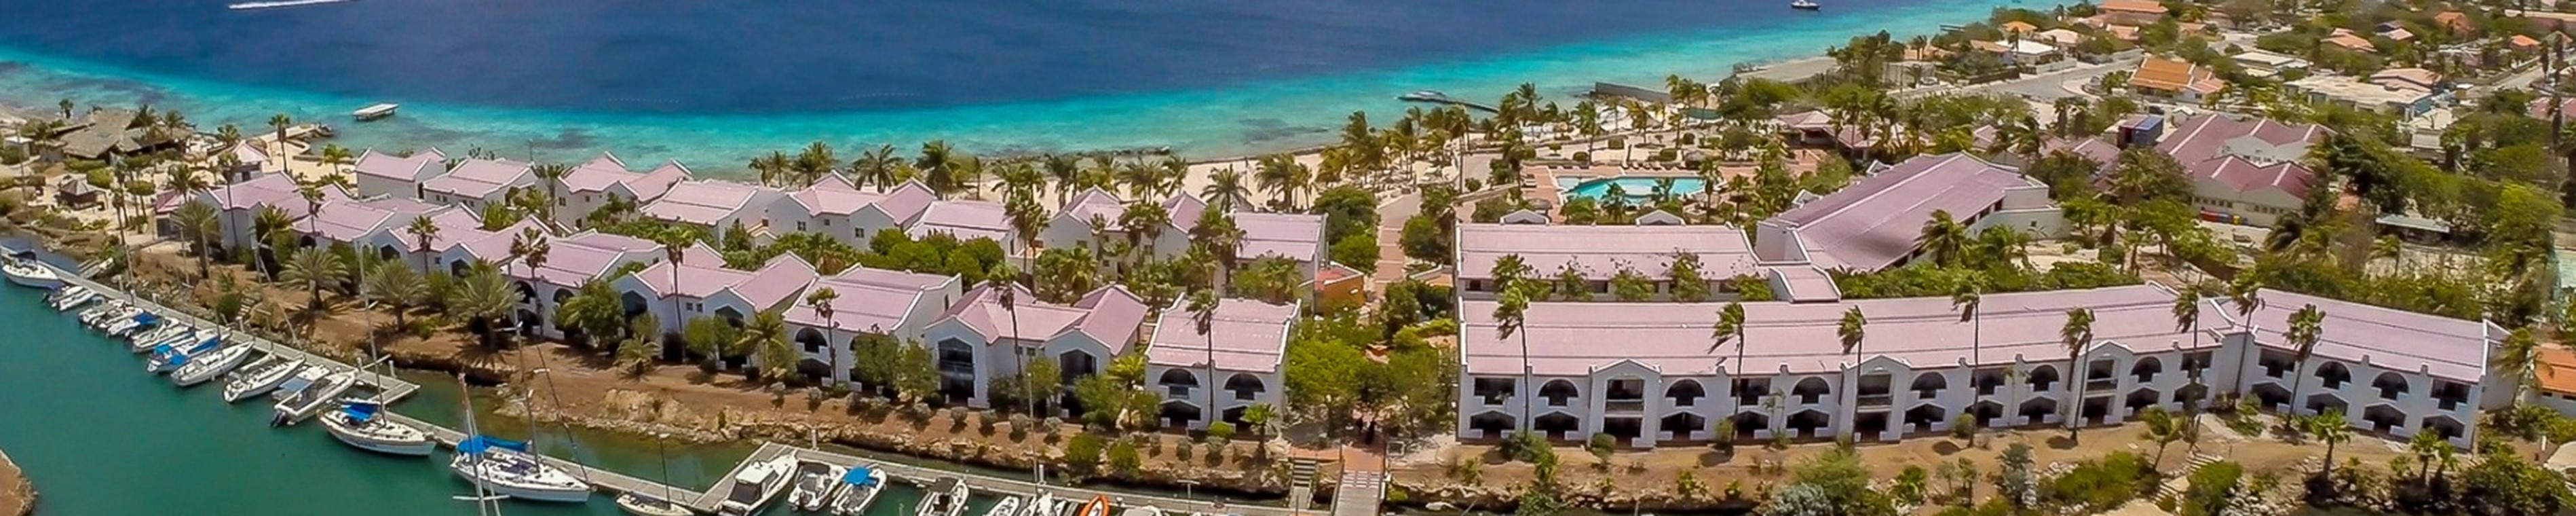 Plaza Beach & Dive Resort Bonaire